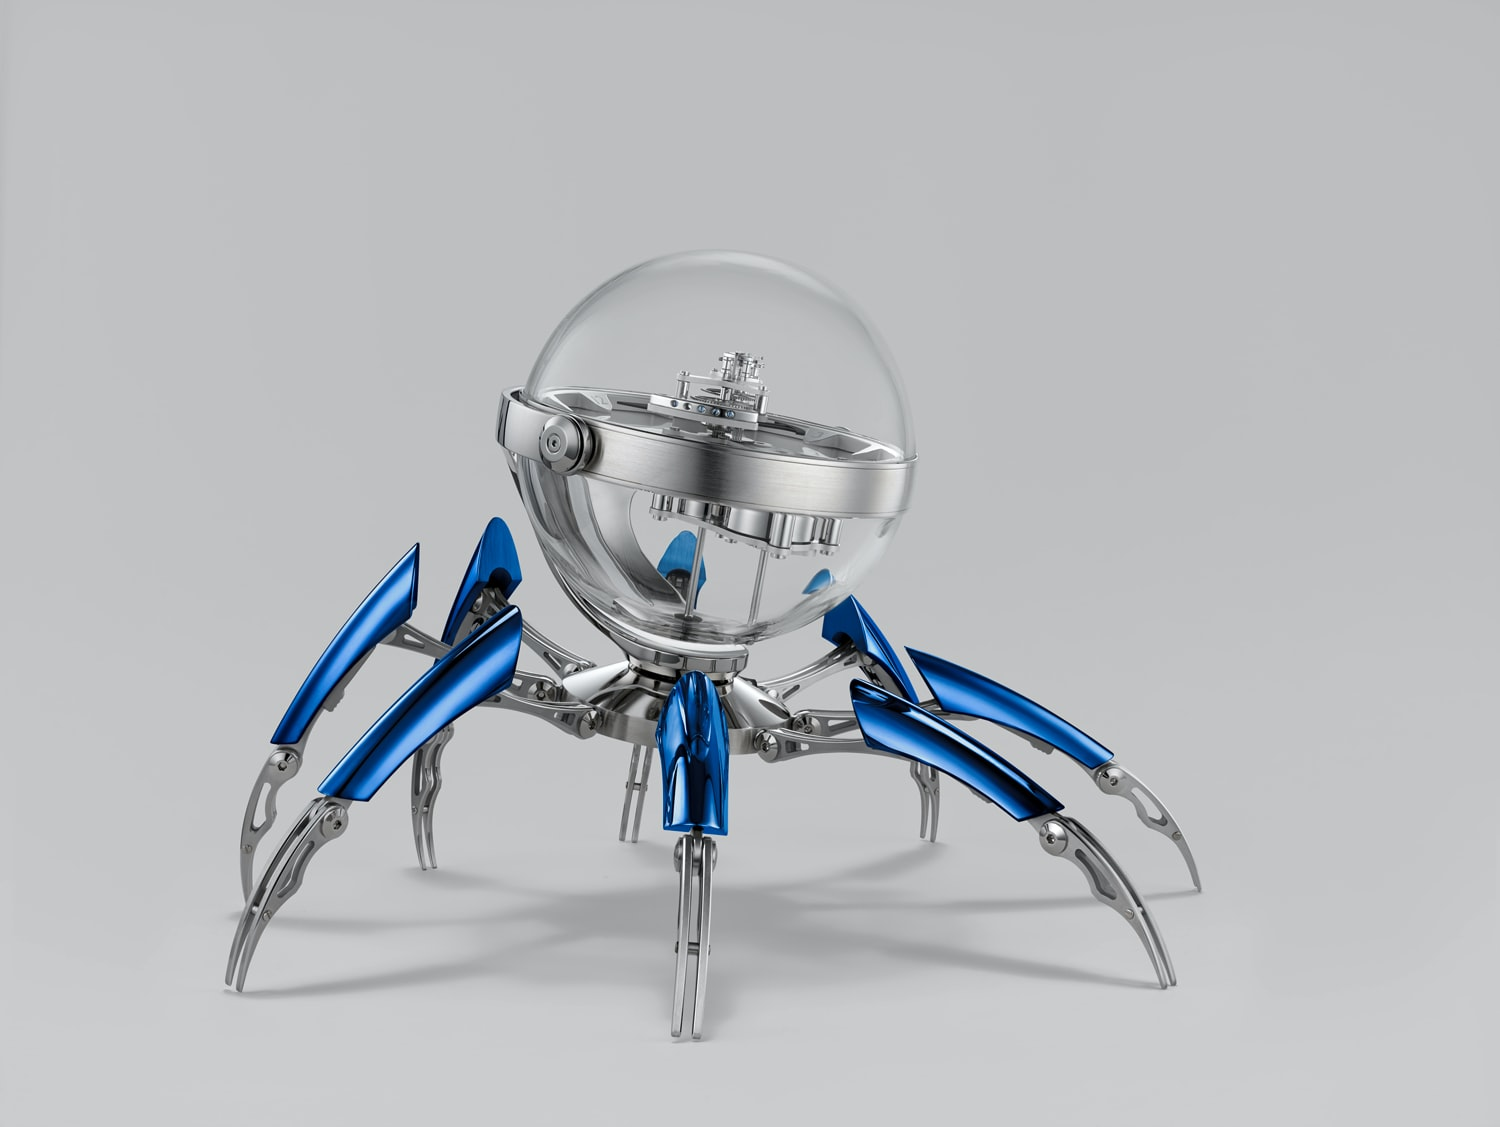 The Octopod clock is the latest collaboration between MB&F and clockmaker L'Epee 1839 (shown, blue PVD version). introducing: the mb&f and l'epe 1839 octopod clock Introducing: The MB&F And L'Epe 1839 Octopod Clock Octopod Profile Blue LRES RGB